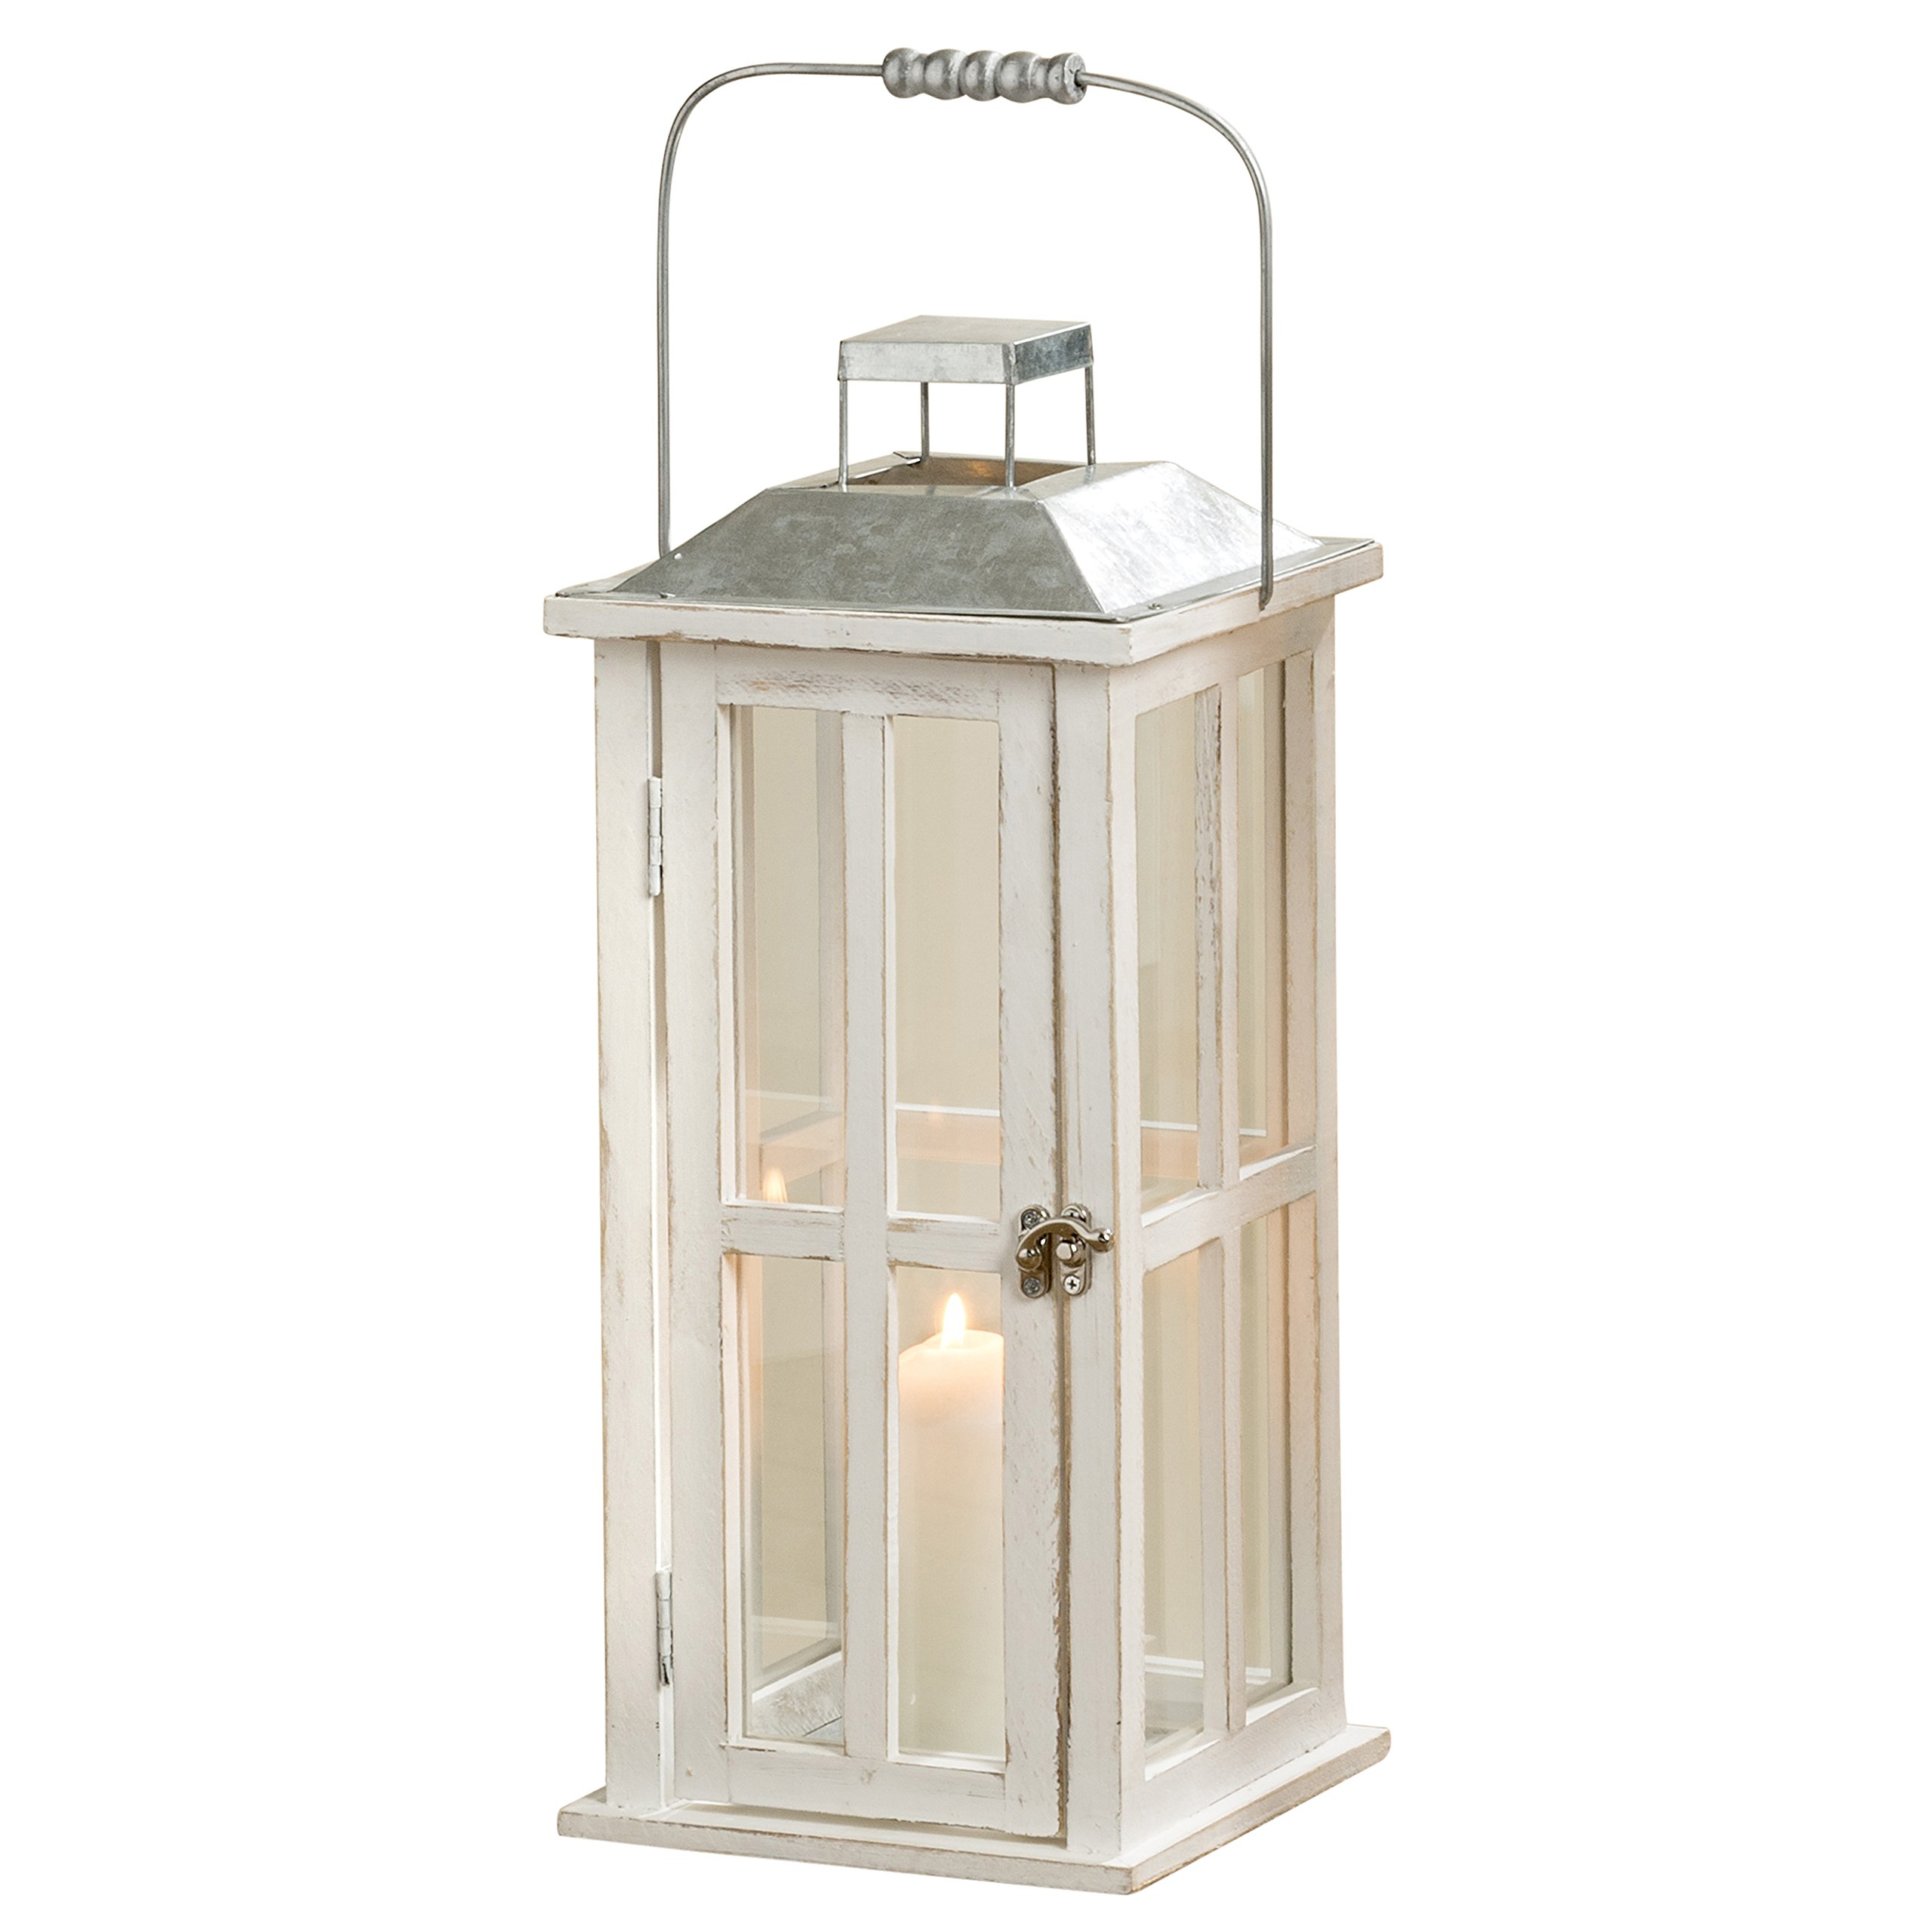 Whole House Worlds The Farm Fair Tall Candle Lantern, Galvanized Metal, Rustic Roof, White Washed Wood, Distressed Shabby Finish, Vintage Style, 2 Ft Tall, (23 1/2 Inches) By